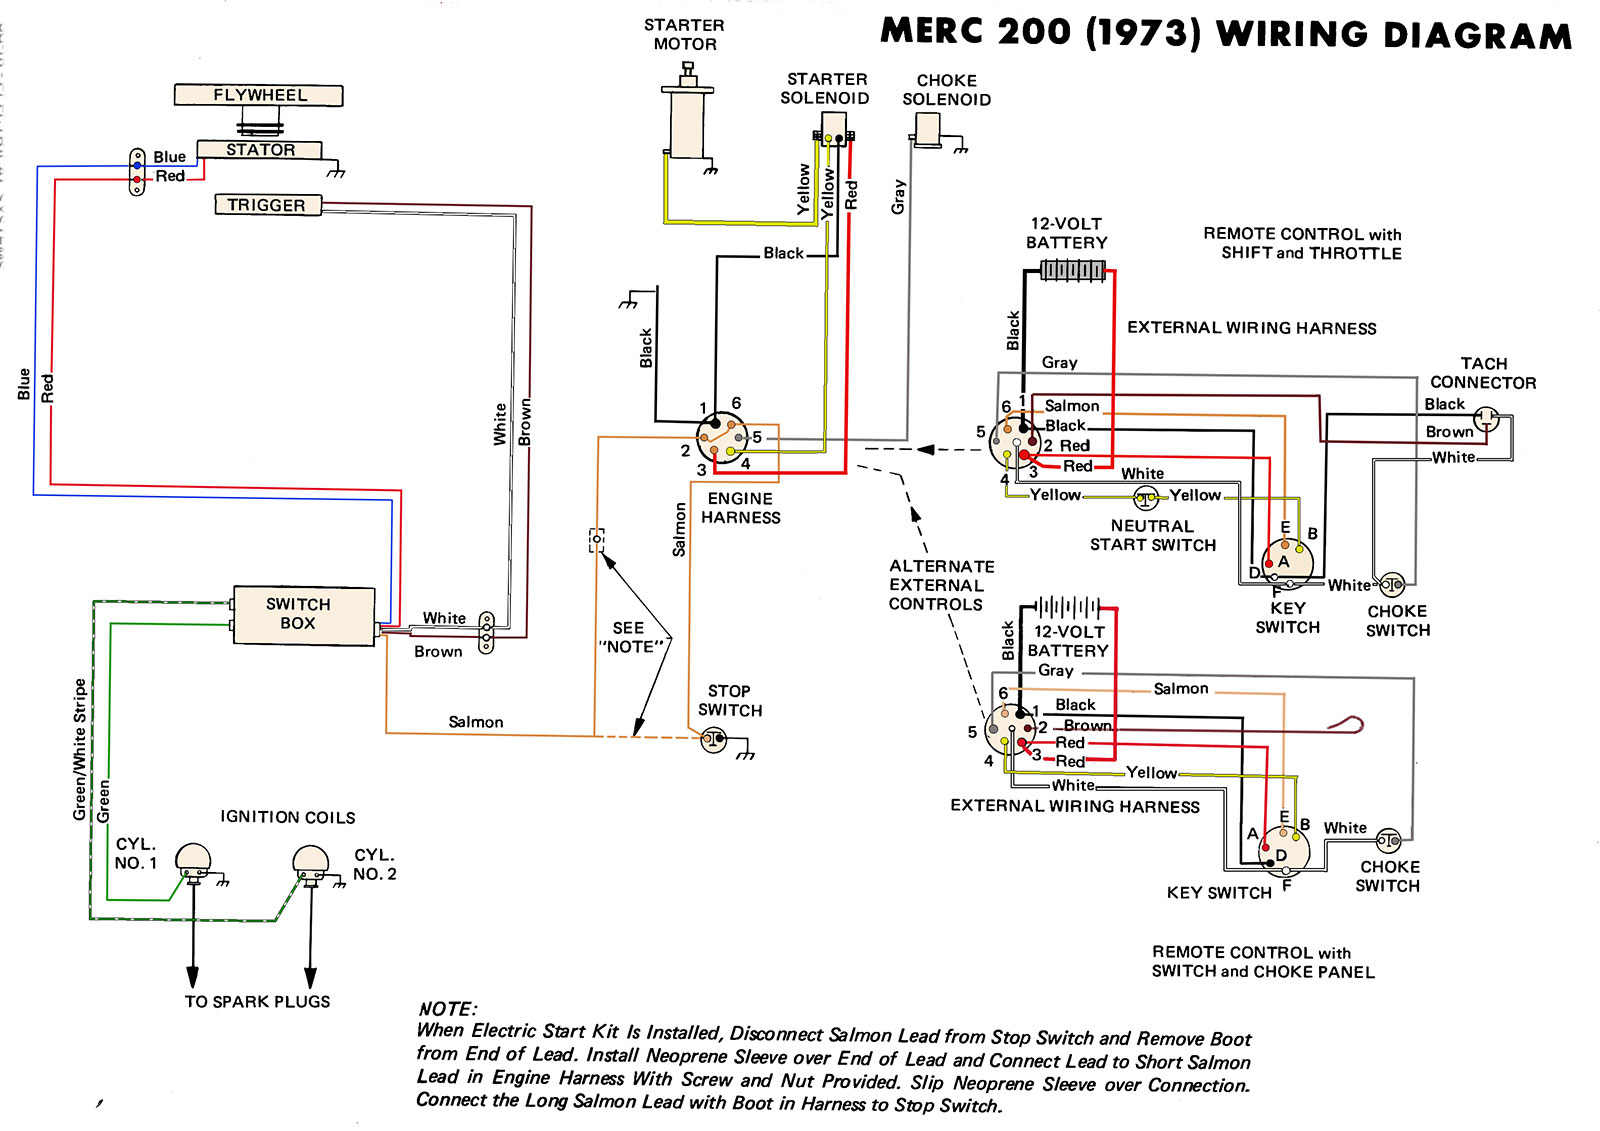 Mercury Outboard Wiring Diagrams Mastertech Marine Mercury 75 HP Wiring  Diagram Mercury 50 Hp Wiring Diagram